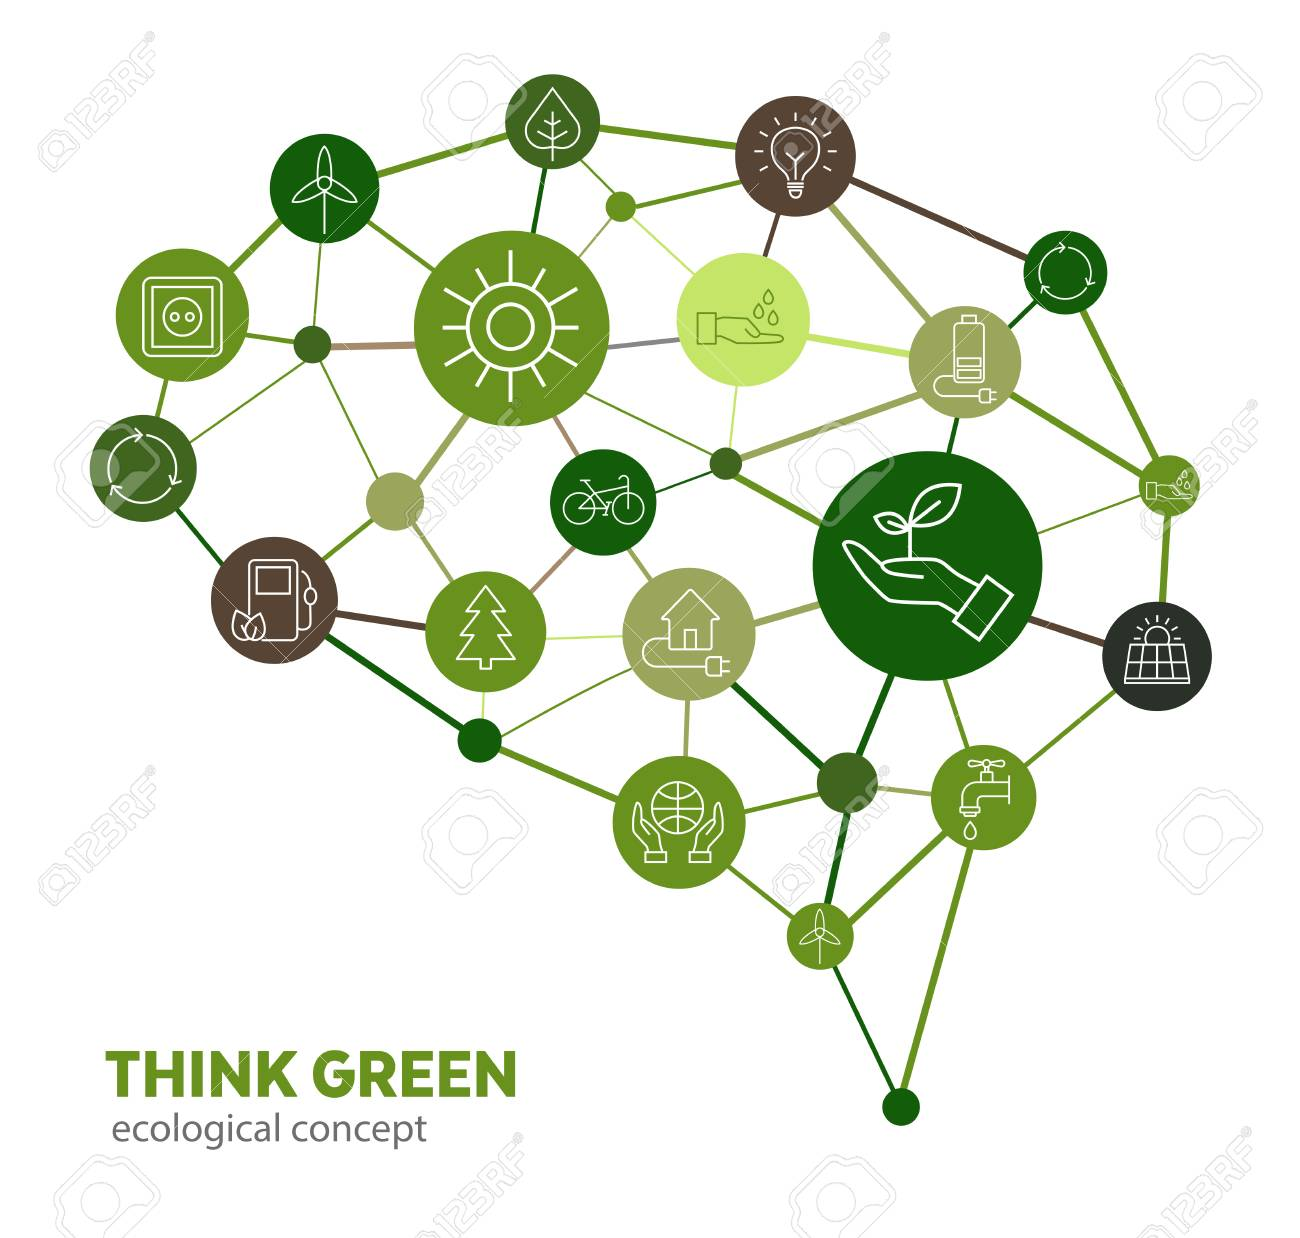 Ecological concept - protection of the environment through the change of human thinking. Can symblolize education that leads to protection of nature and the planet. - 100998462